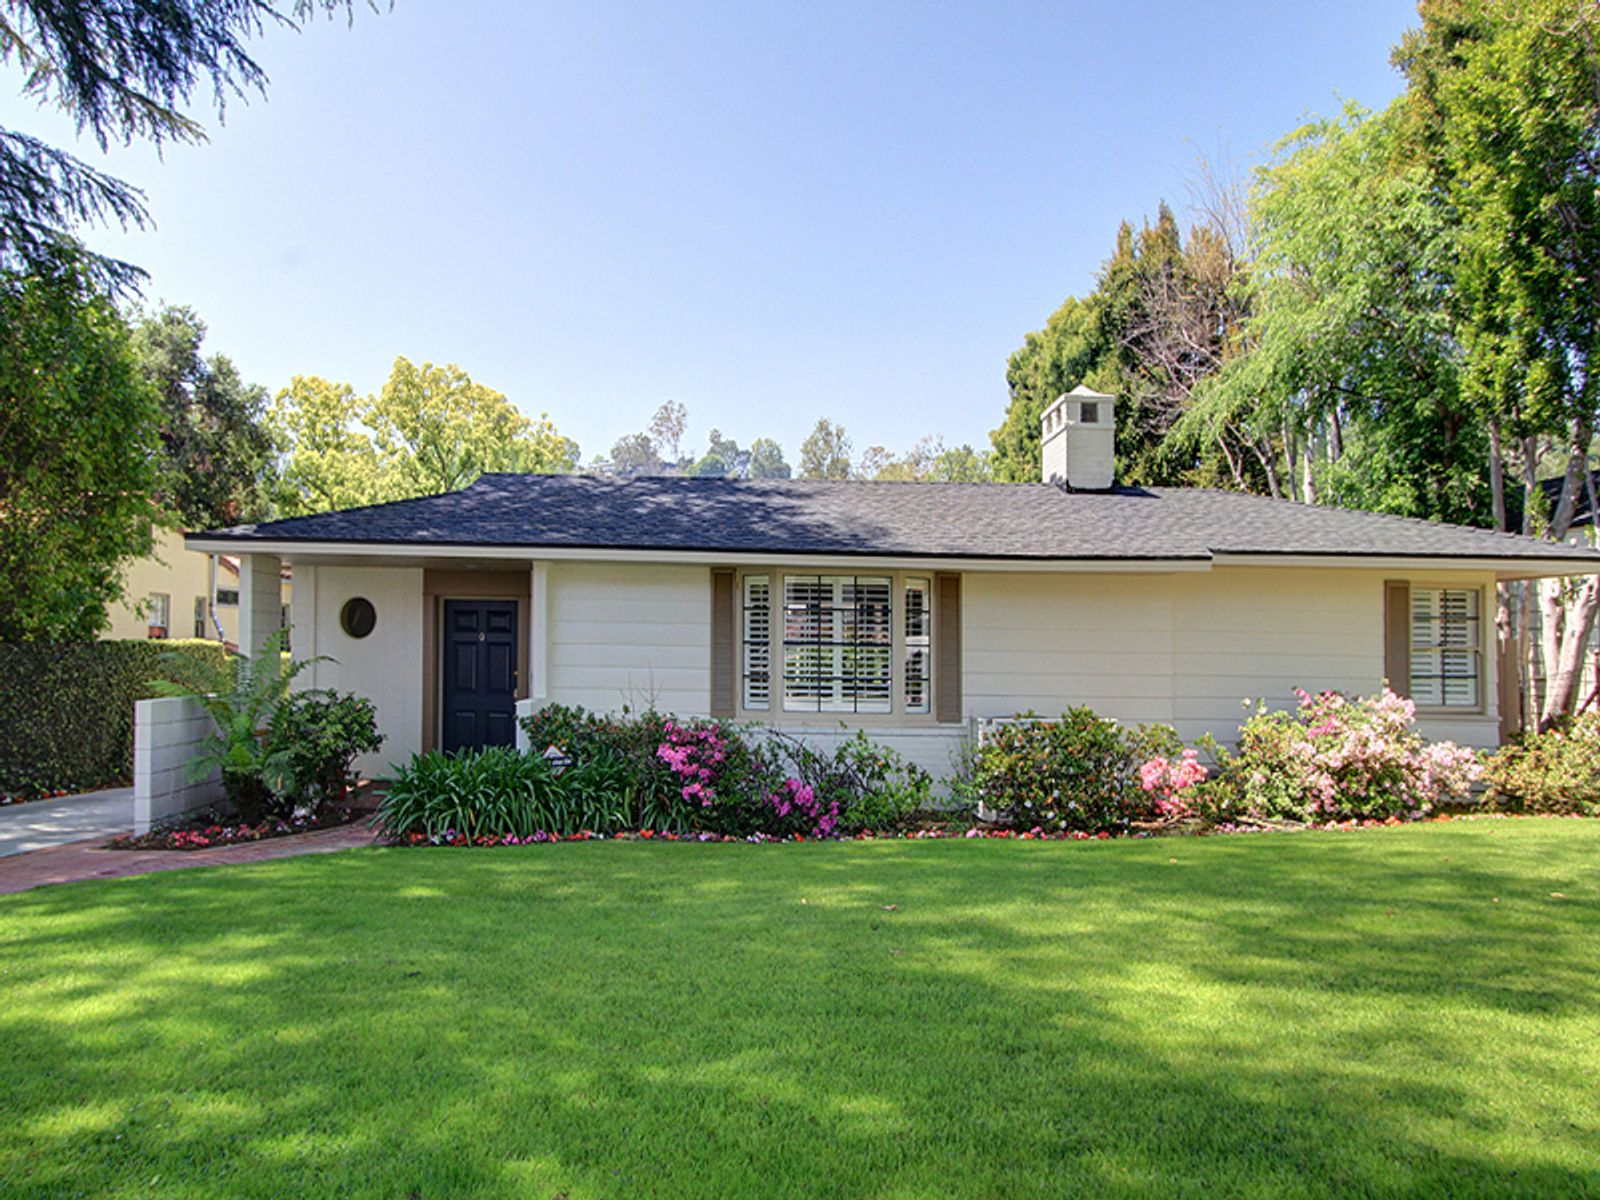 201 Glen Summer Road, Pasadena CA Single Family Home - Pasadena Real Estate